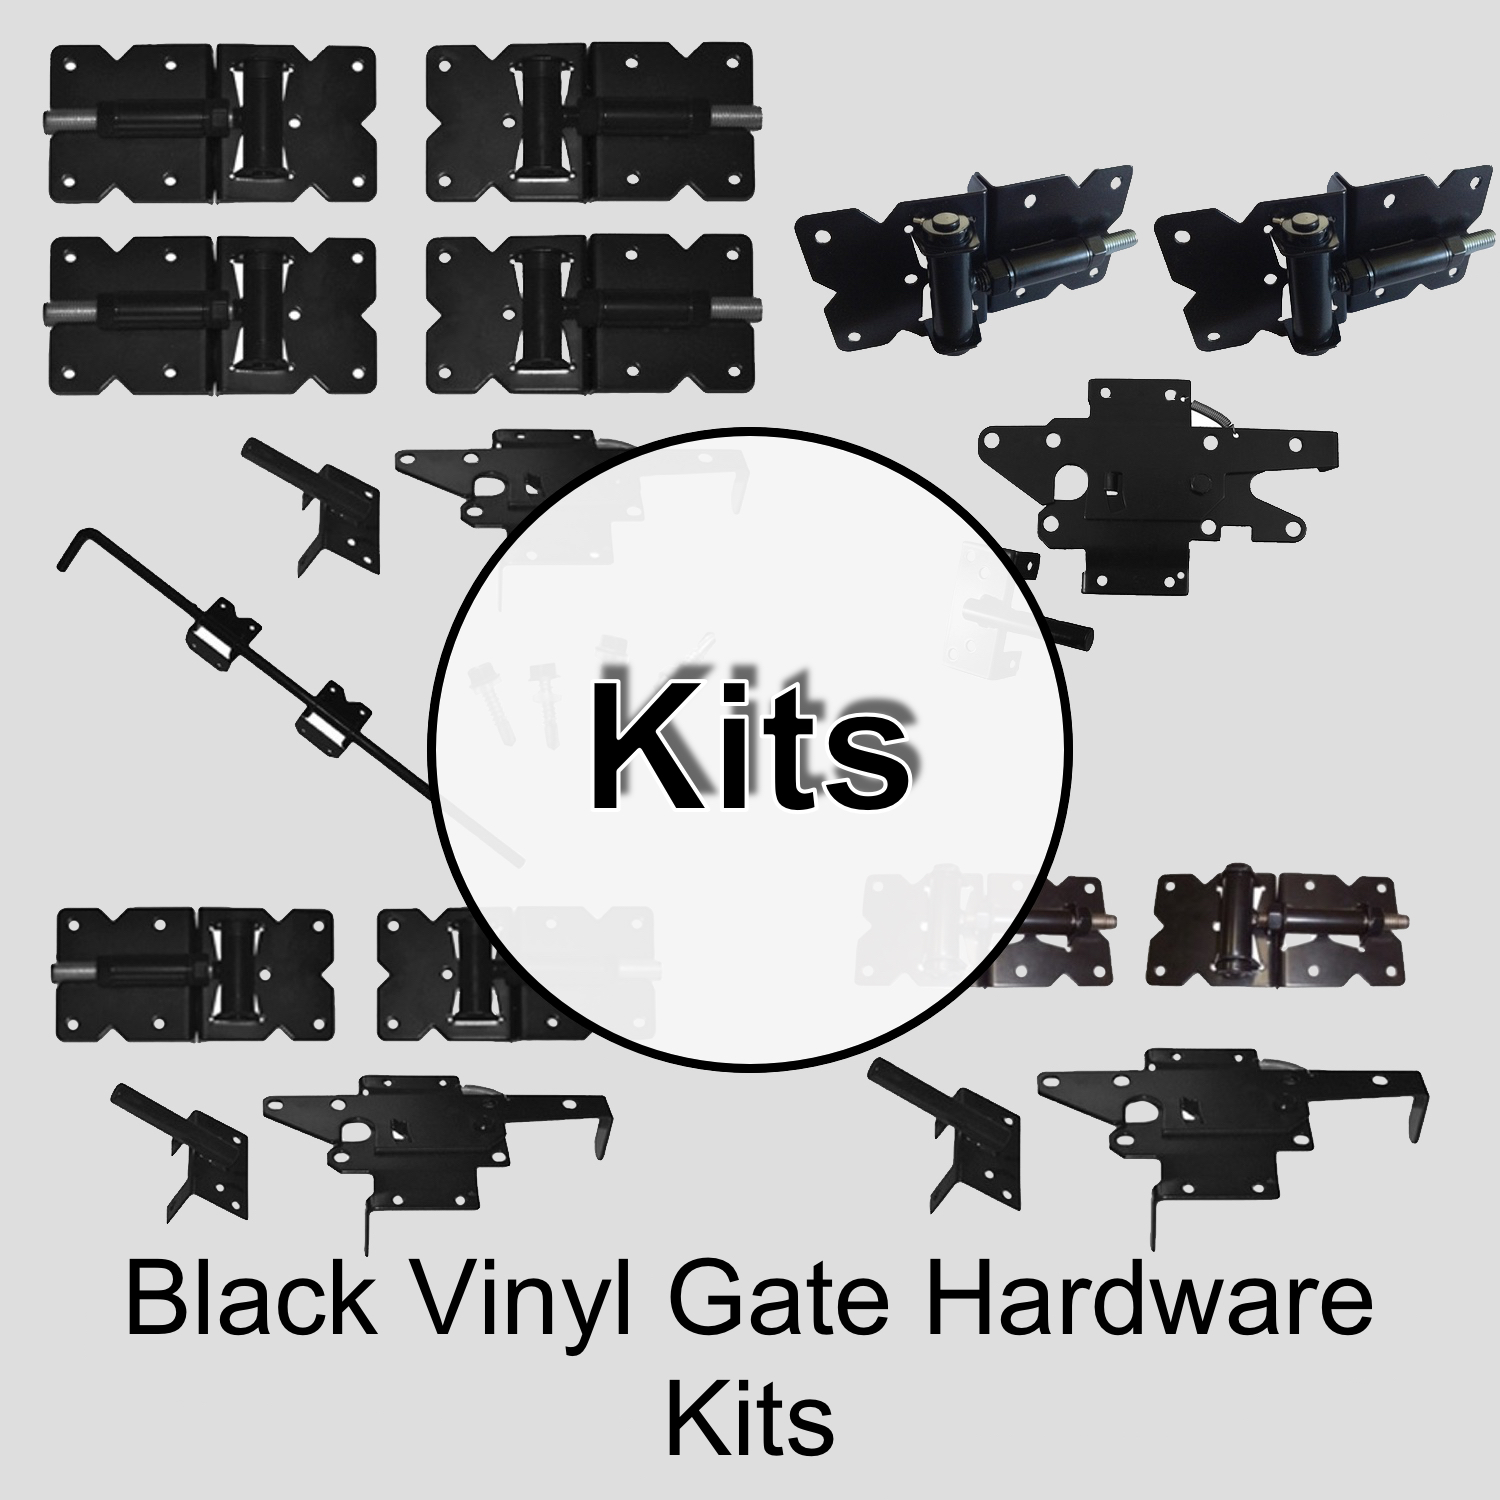 Black Vinyl Gate Hardware Kits